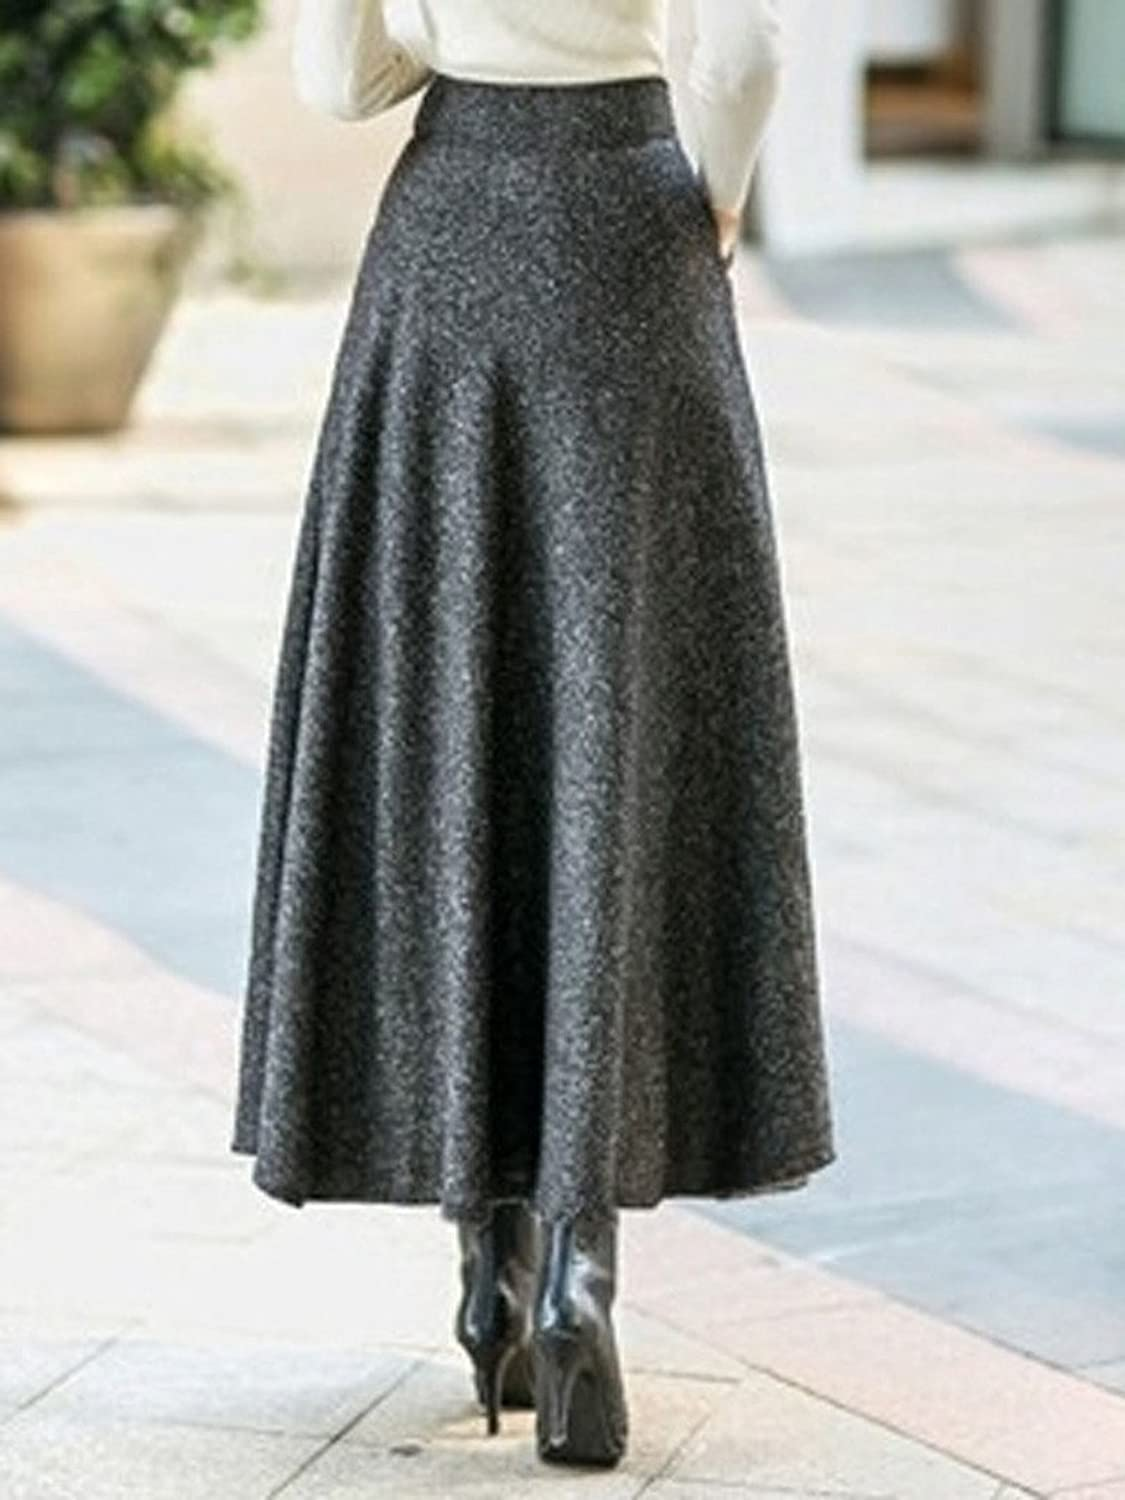 1920s Skirt History CR Womens High Waist A-line Flared Long Skirt Winter Fall Midi Skirt $27.99 AT vintagedancer.com